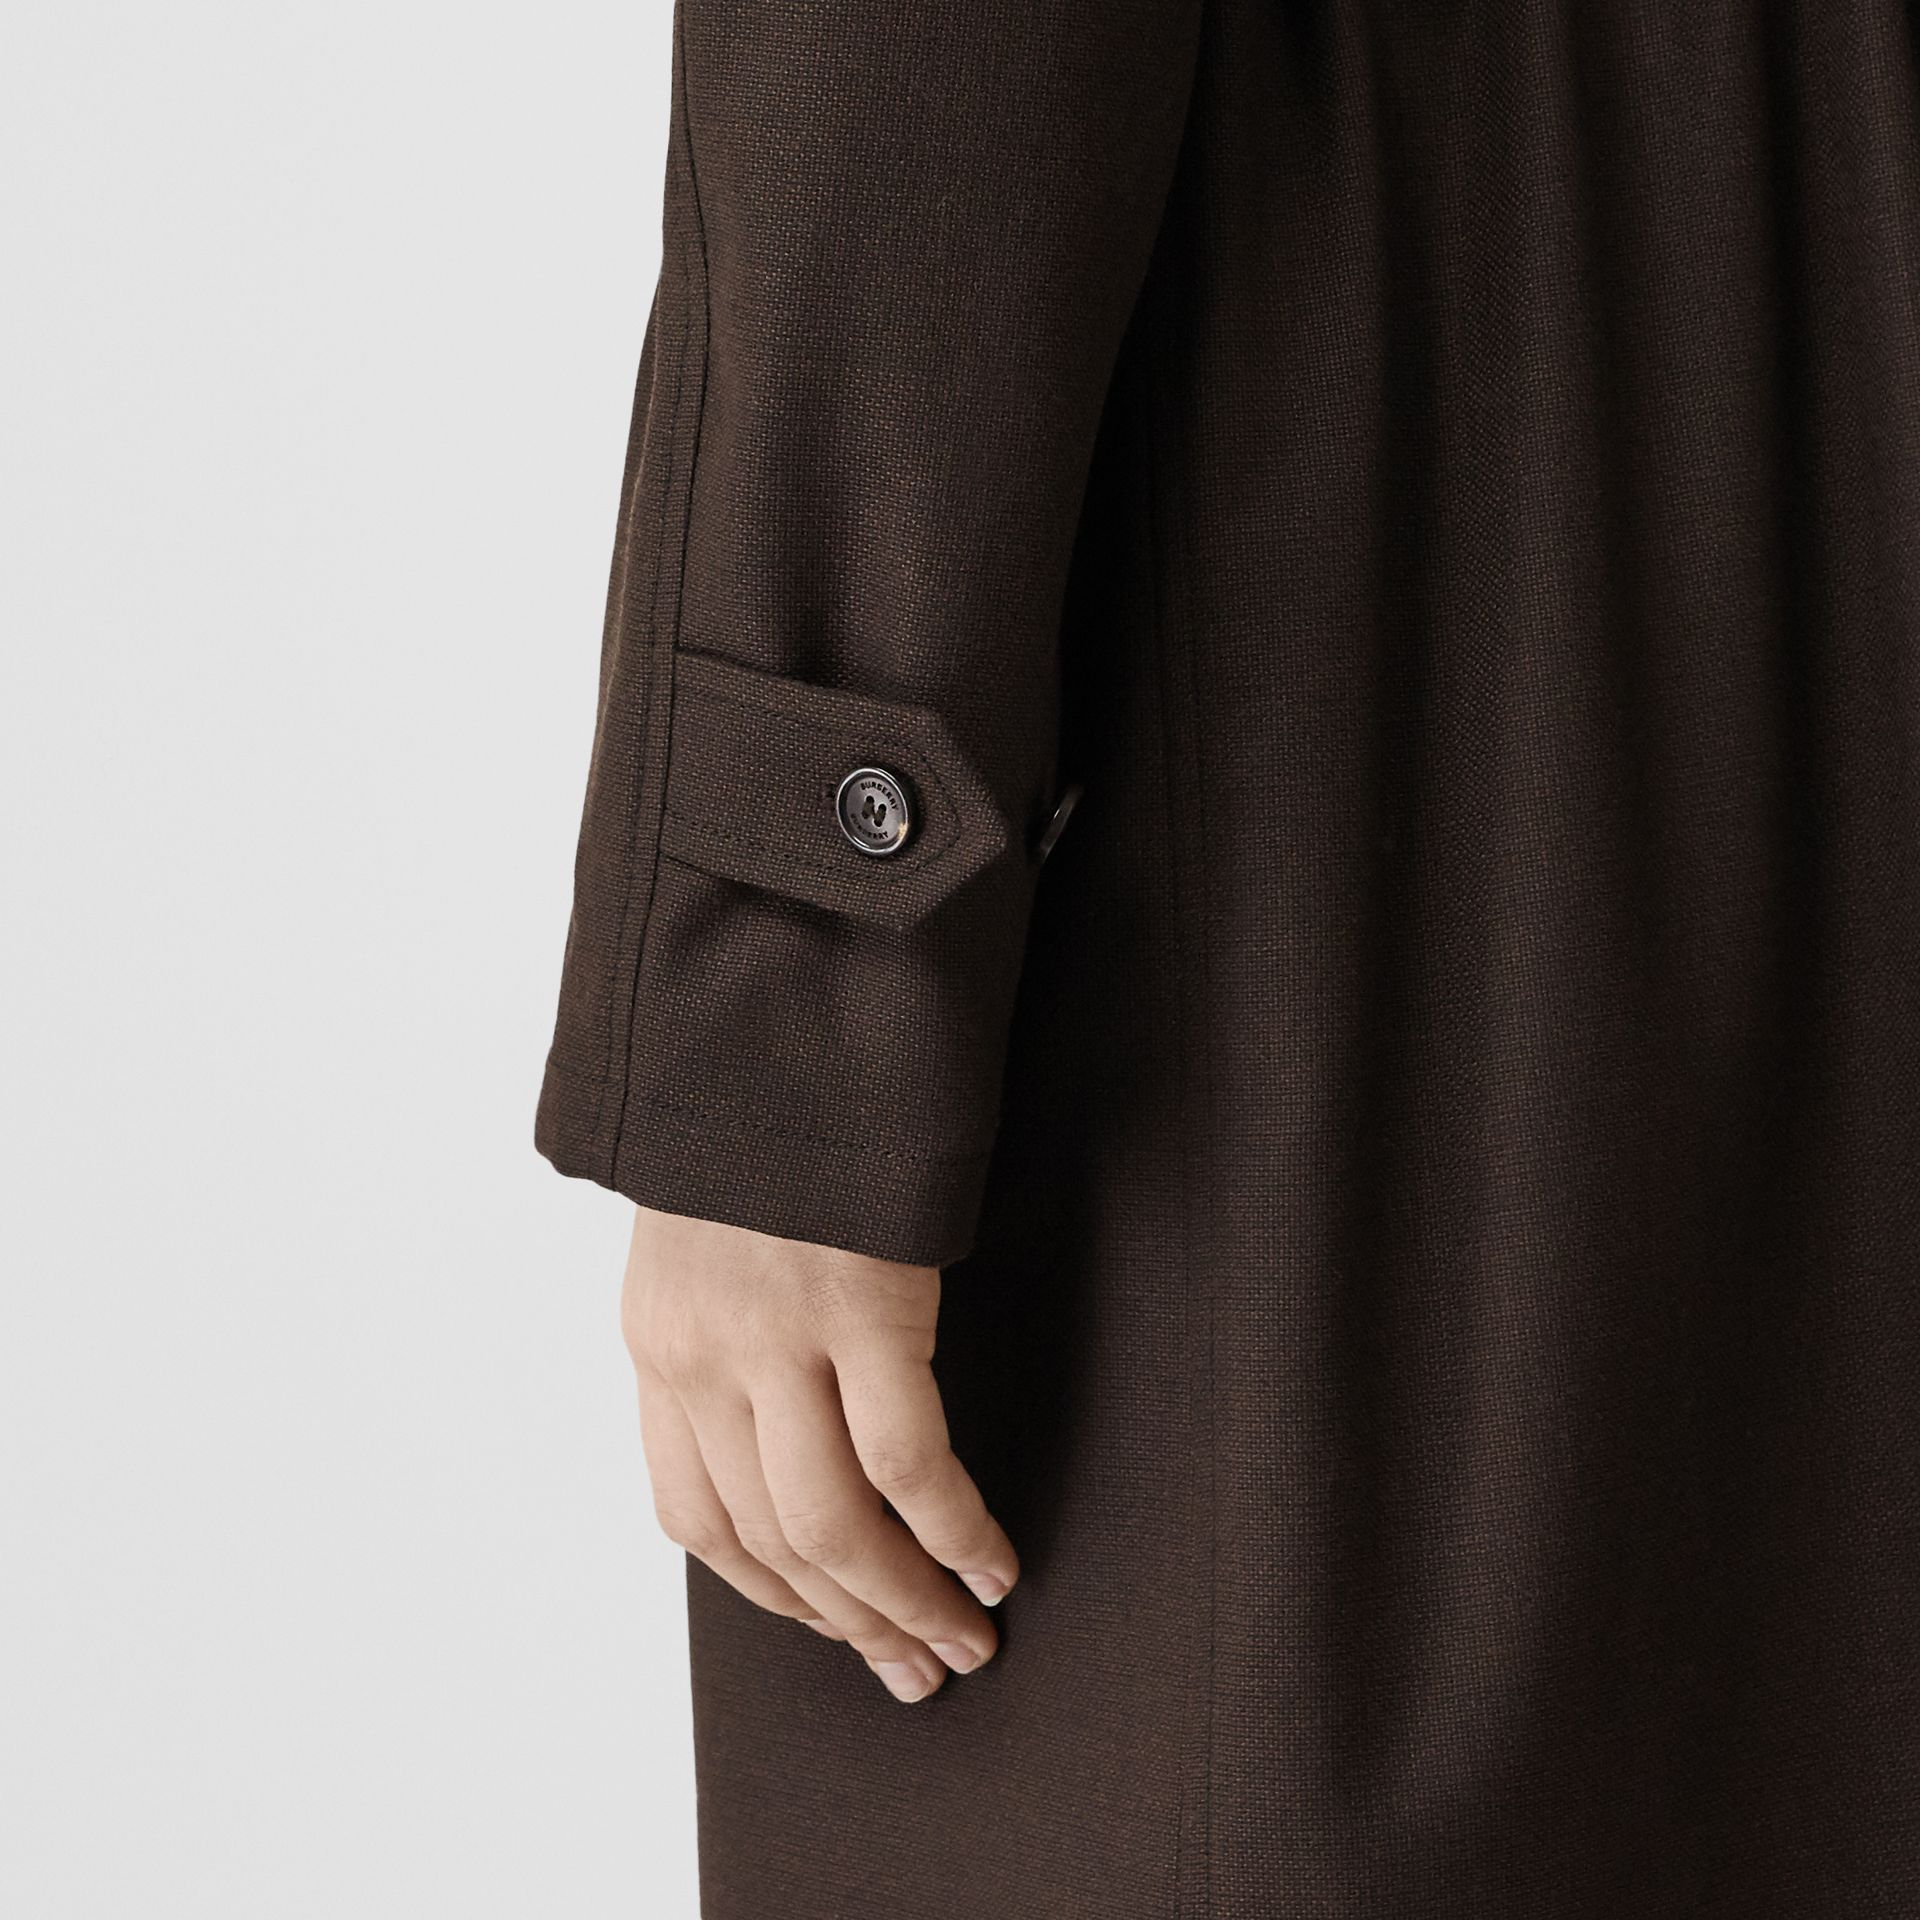 Scarf Detail Wool Car Coat in Coffee - Women | Burberry - gallery image 6